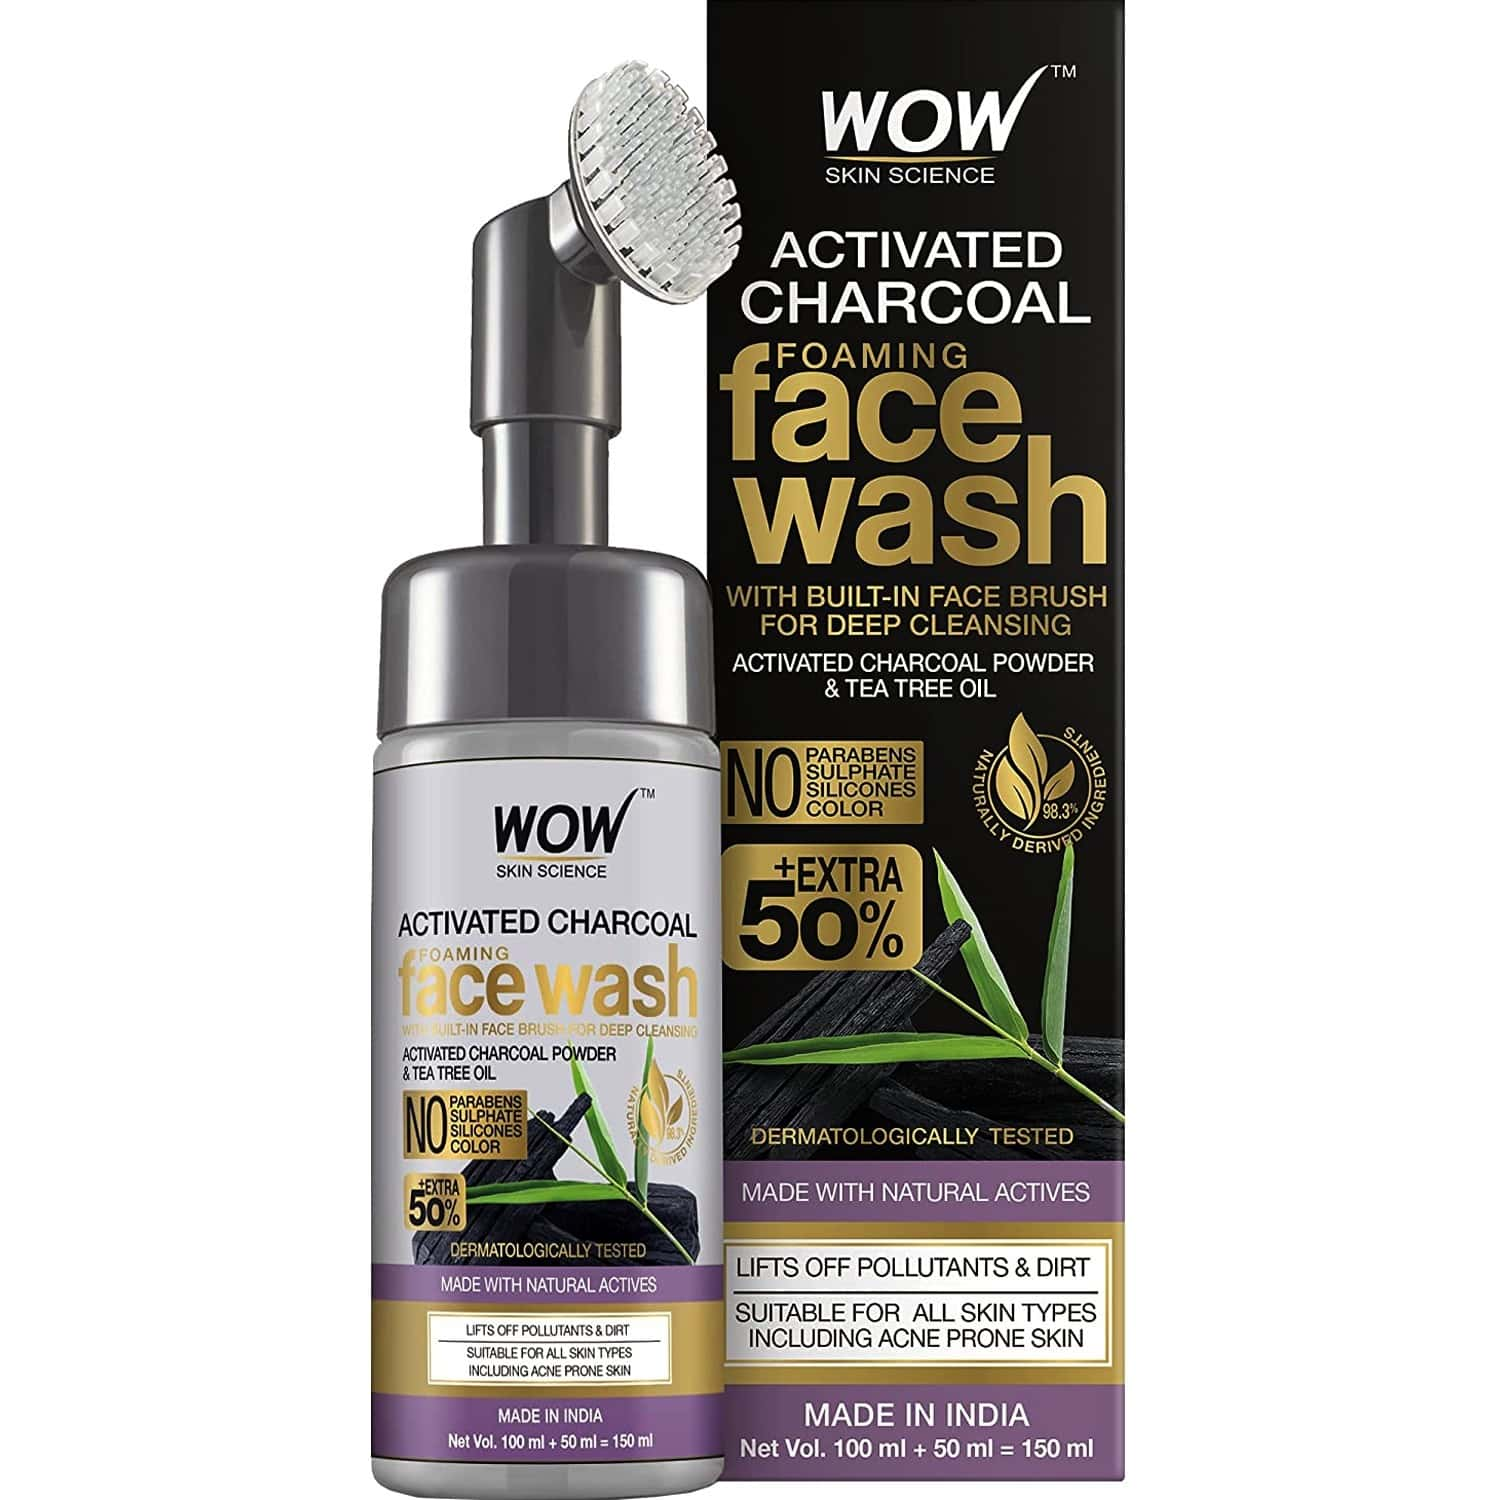 Wow Skin Science Activated Charcoal Foaming Face Wash With Built-in Face Brush - 150 Ml